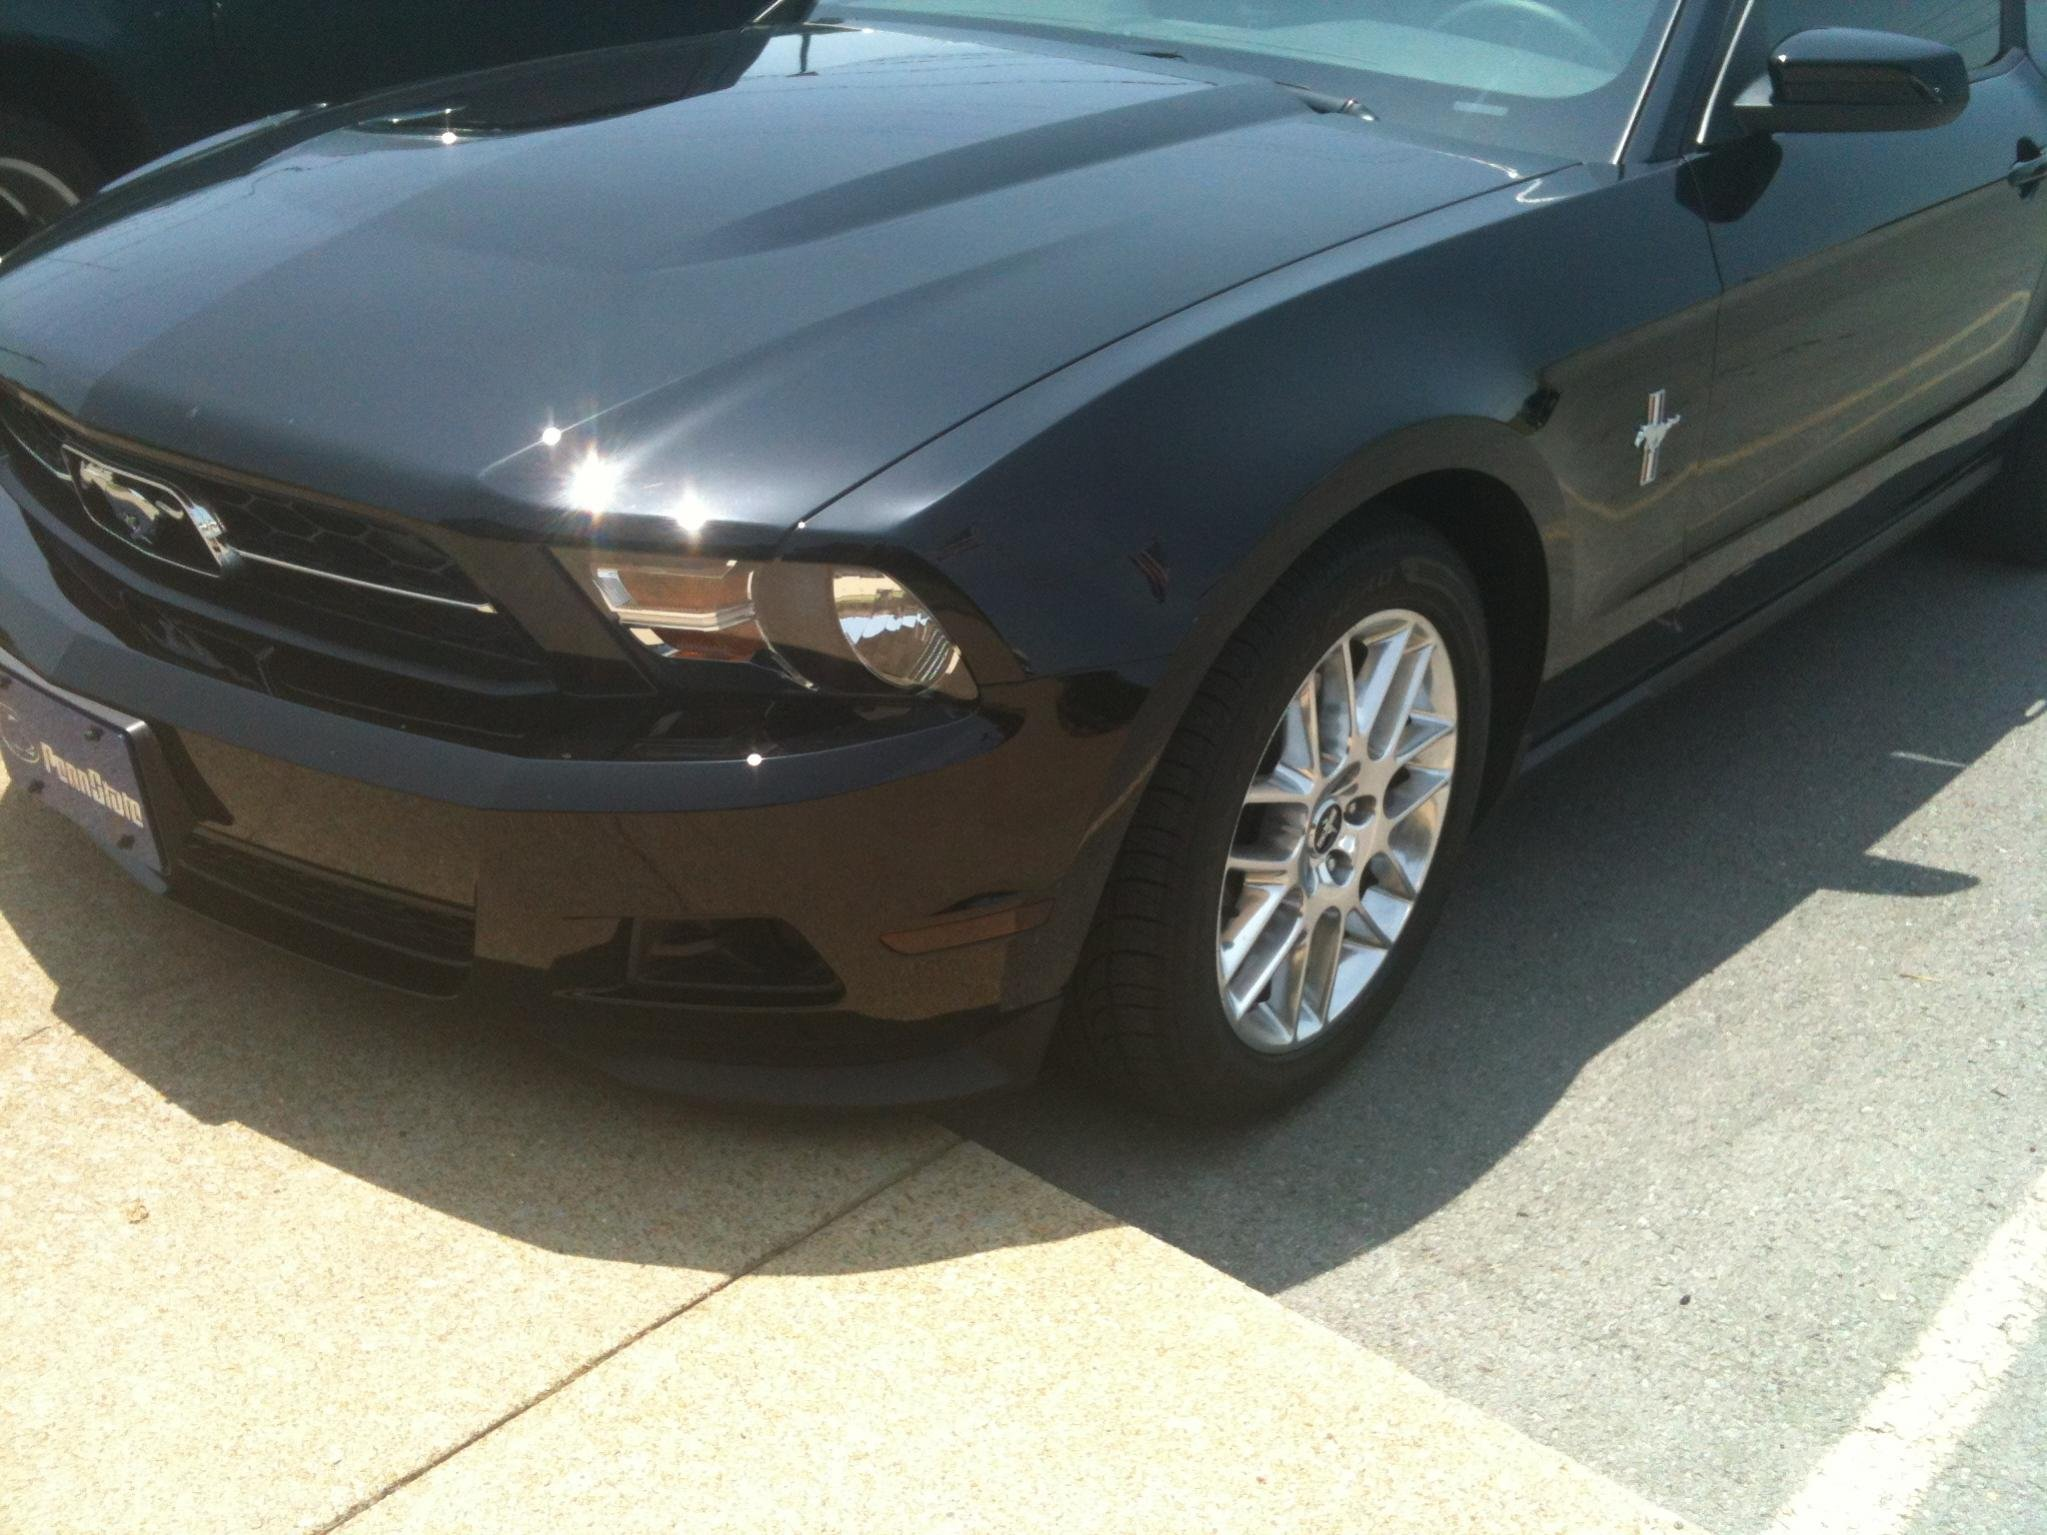 2012 Mustang V6 New to Site-side-tint.jpg